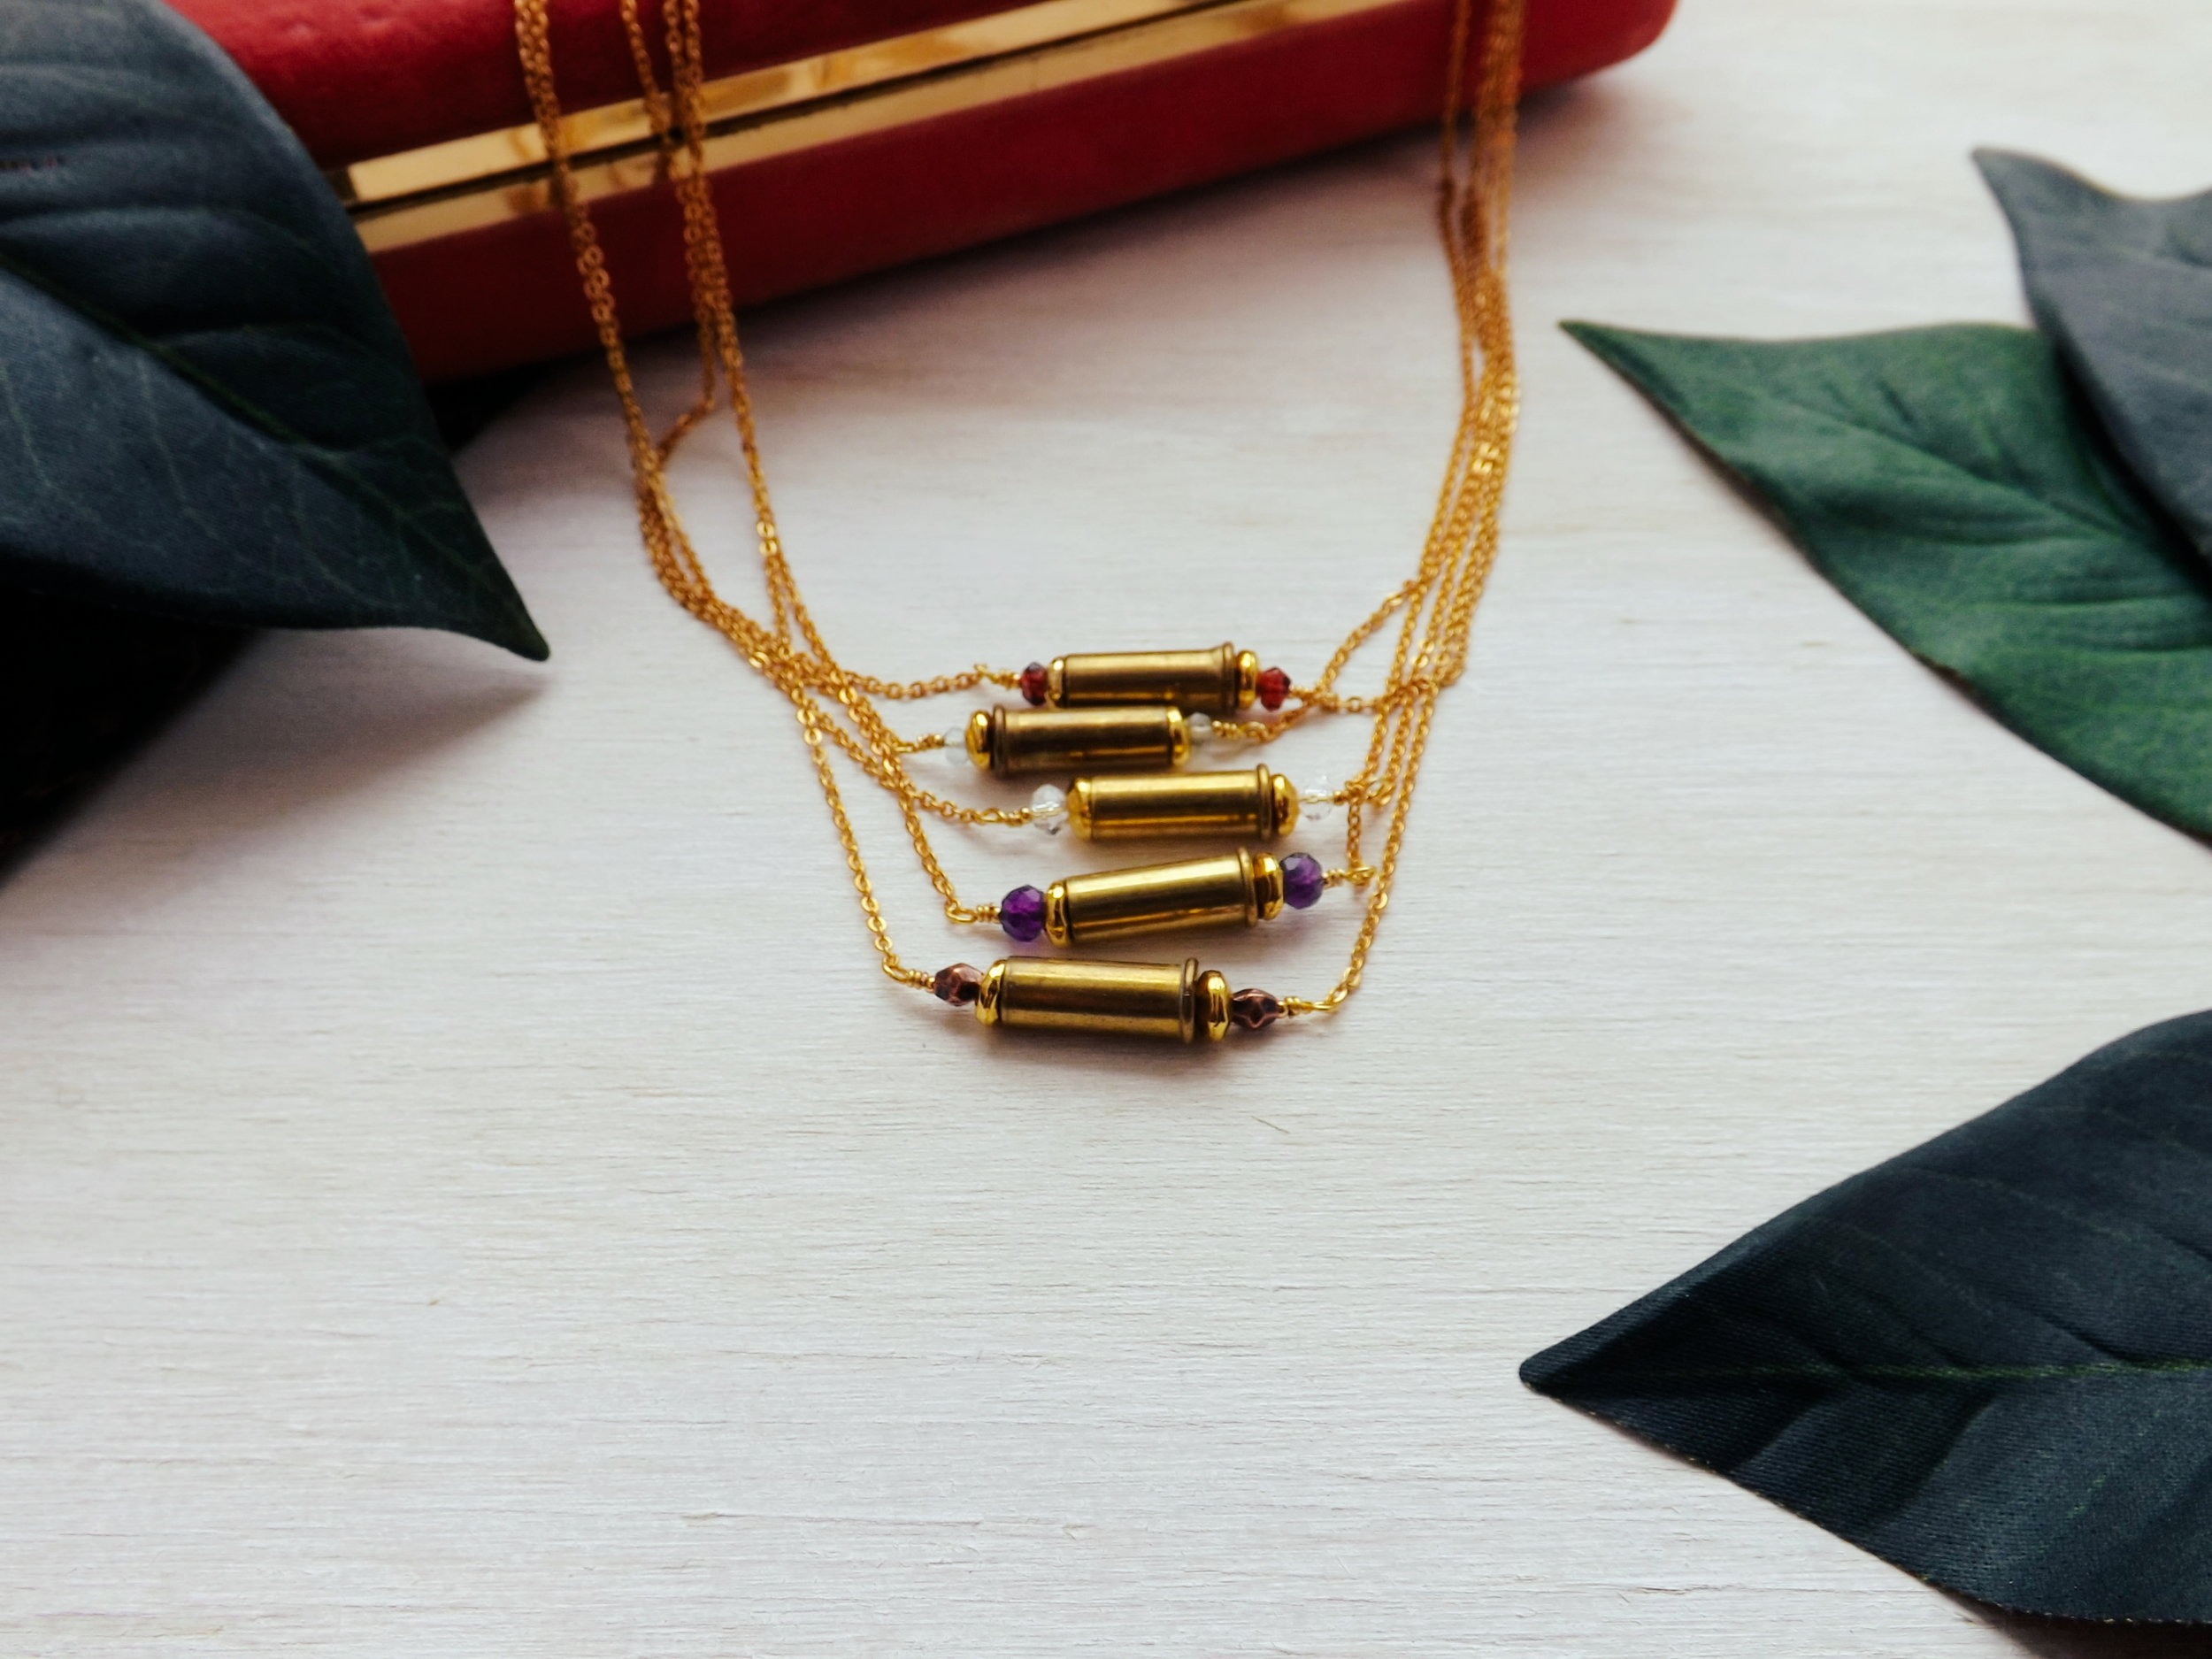 Click here for a closer look at our Fiercely Loved dainty bullet shell necklace ($32).